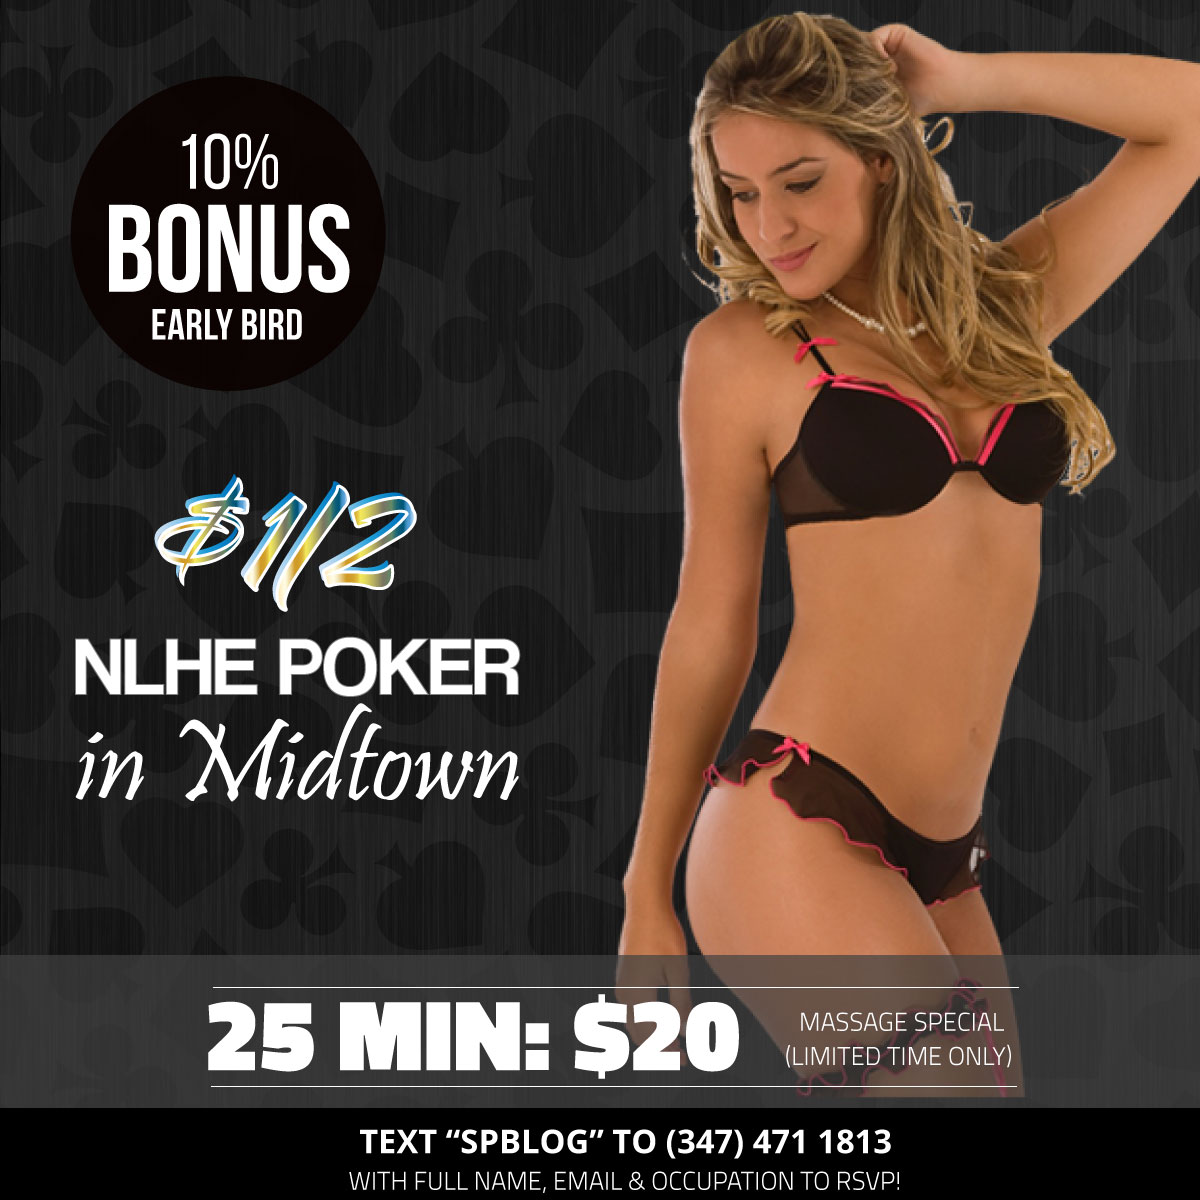 Today's NYC No Limit Holdem Poker Cash Game